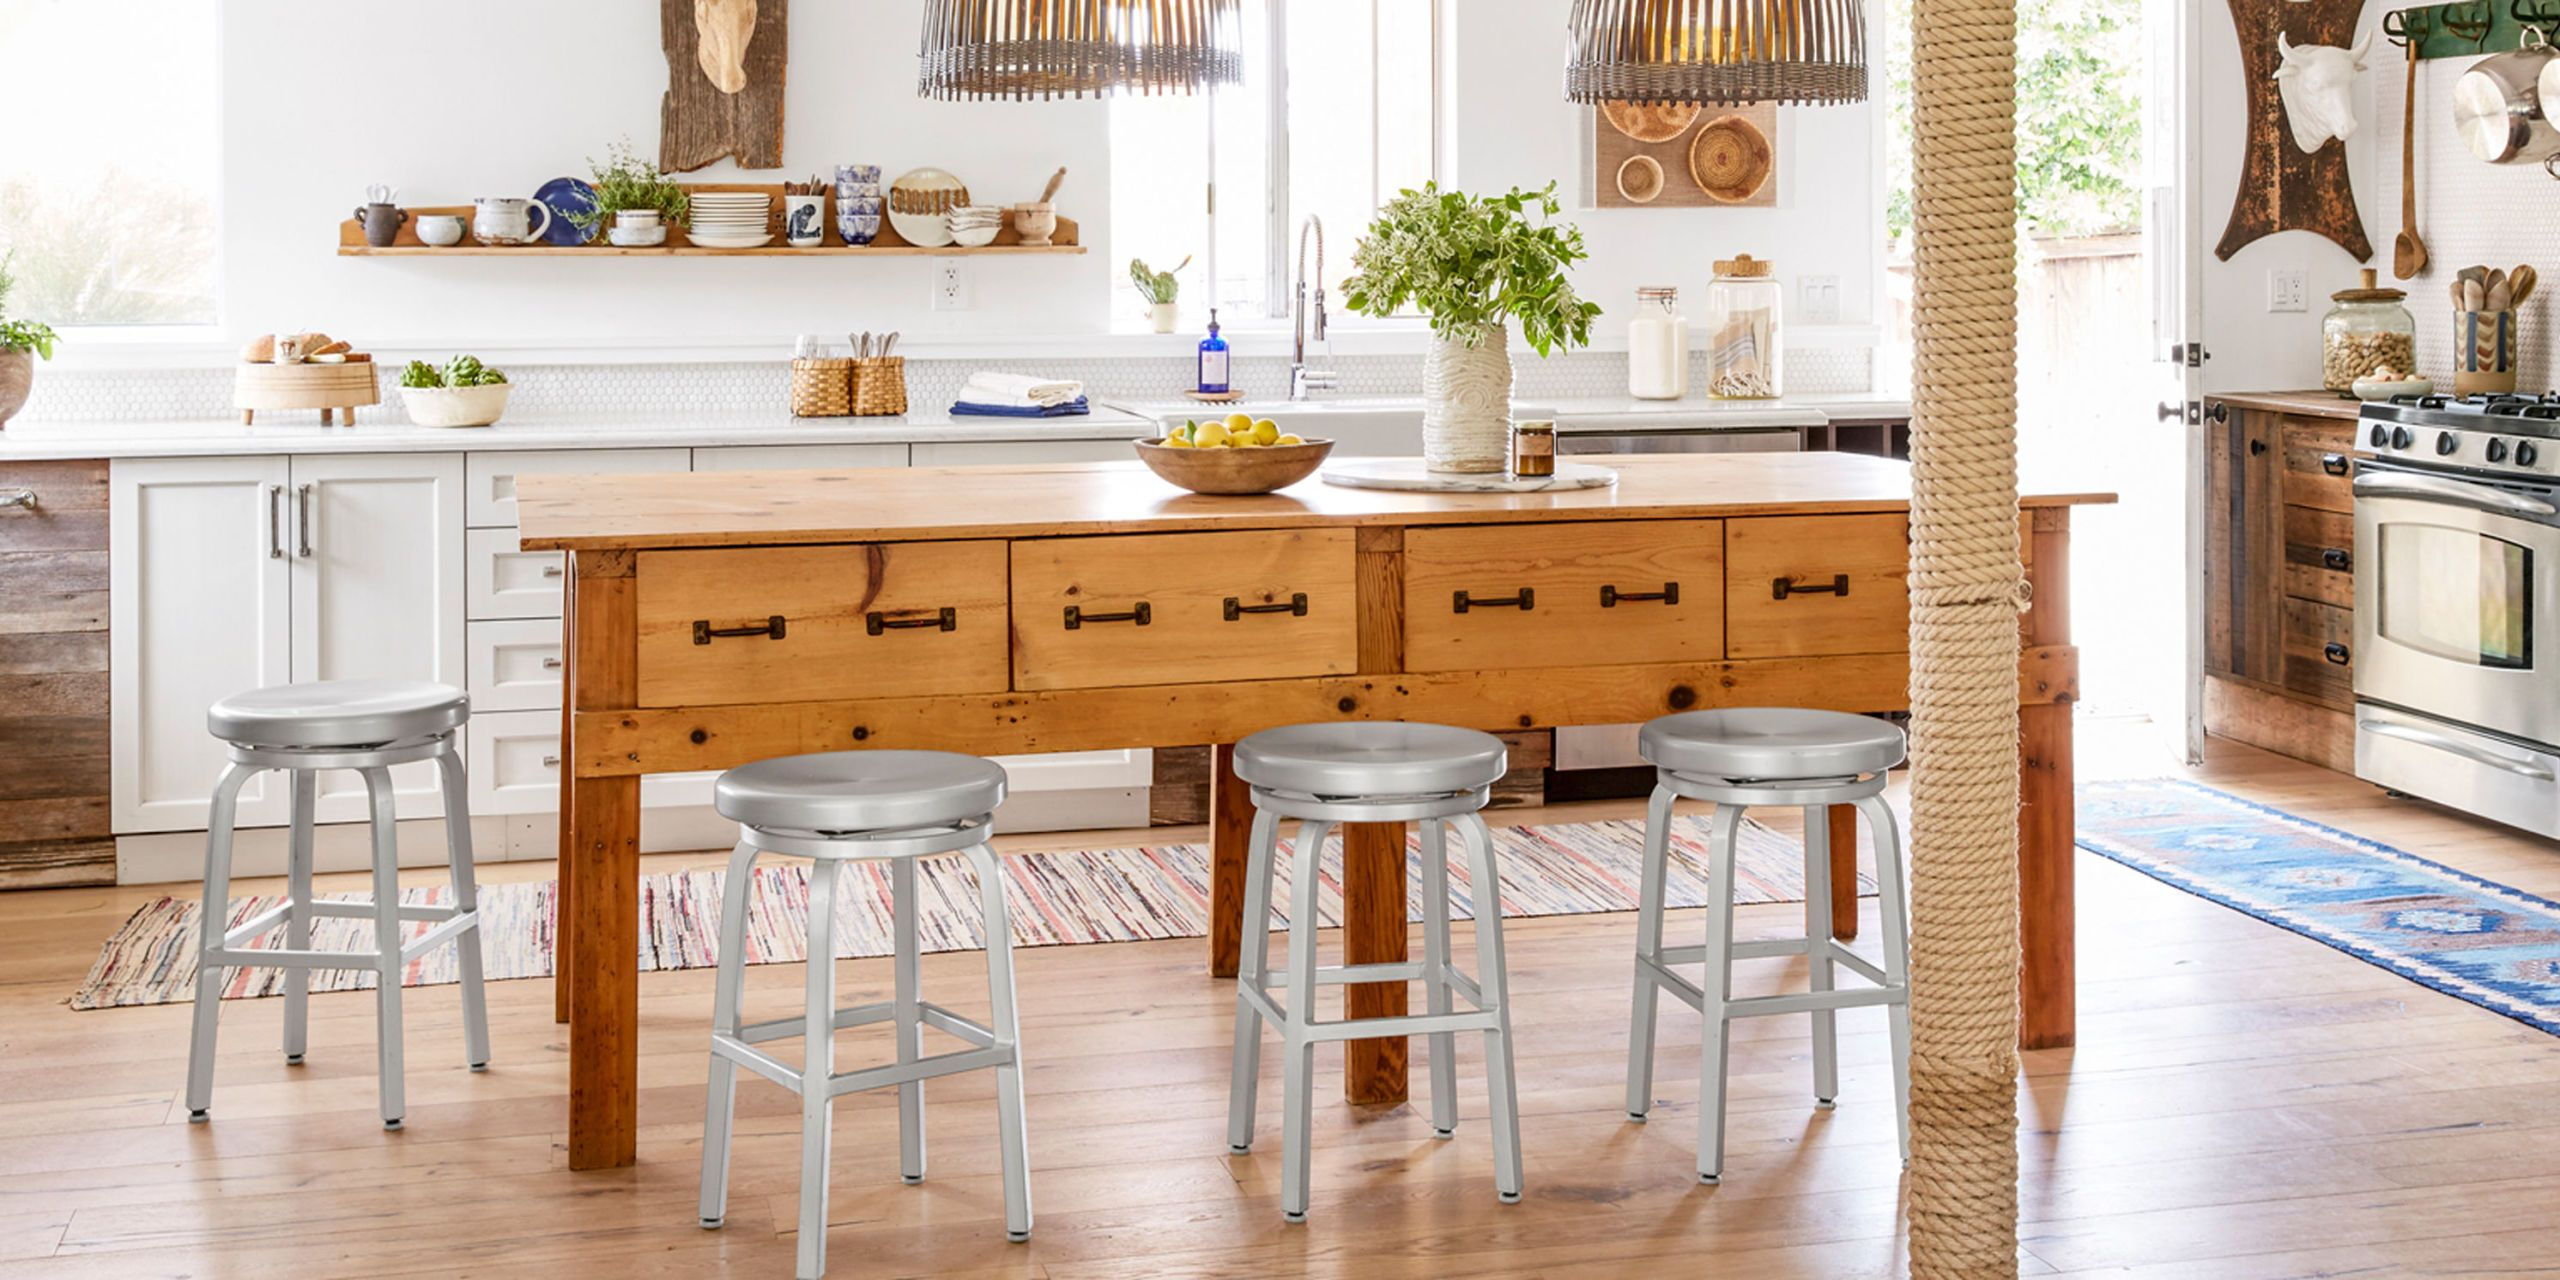 Great Add Storage, Style, And Extra Seating With A Standalone Kitchen Island.